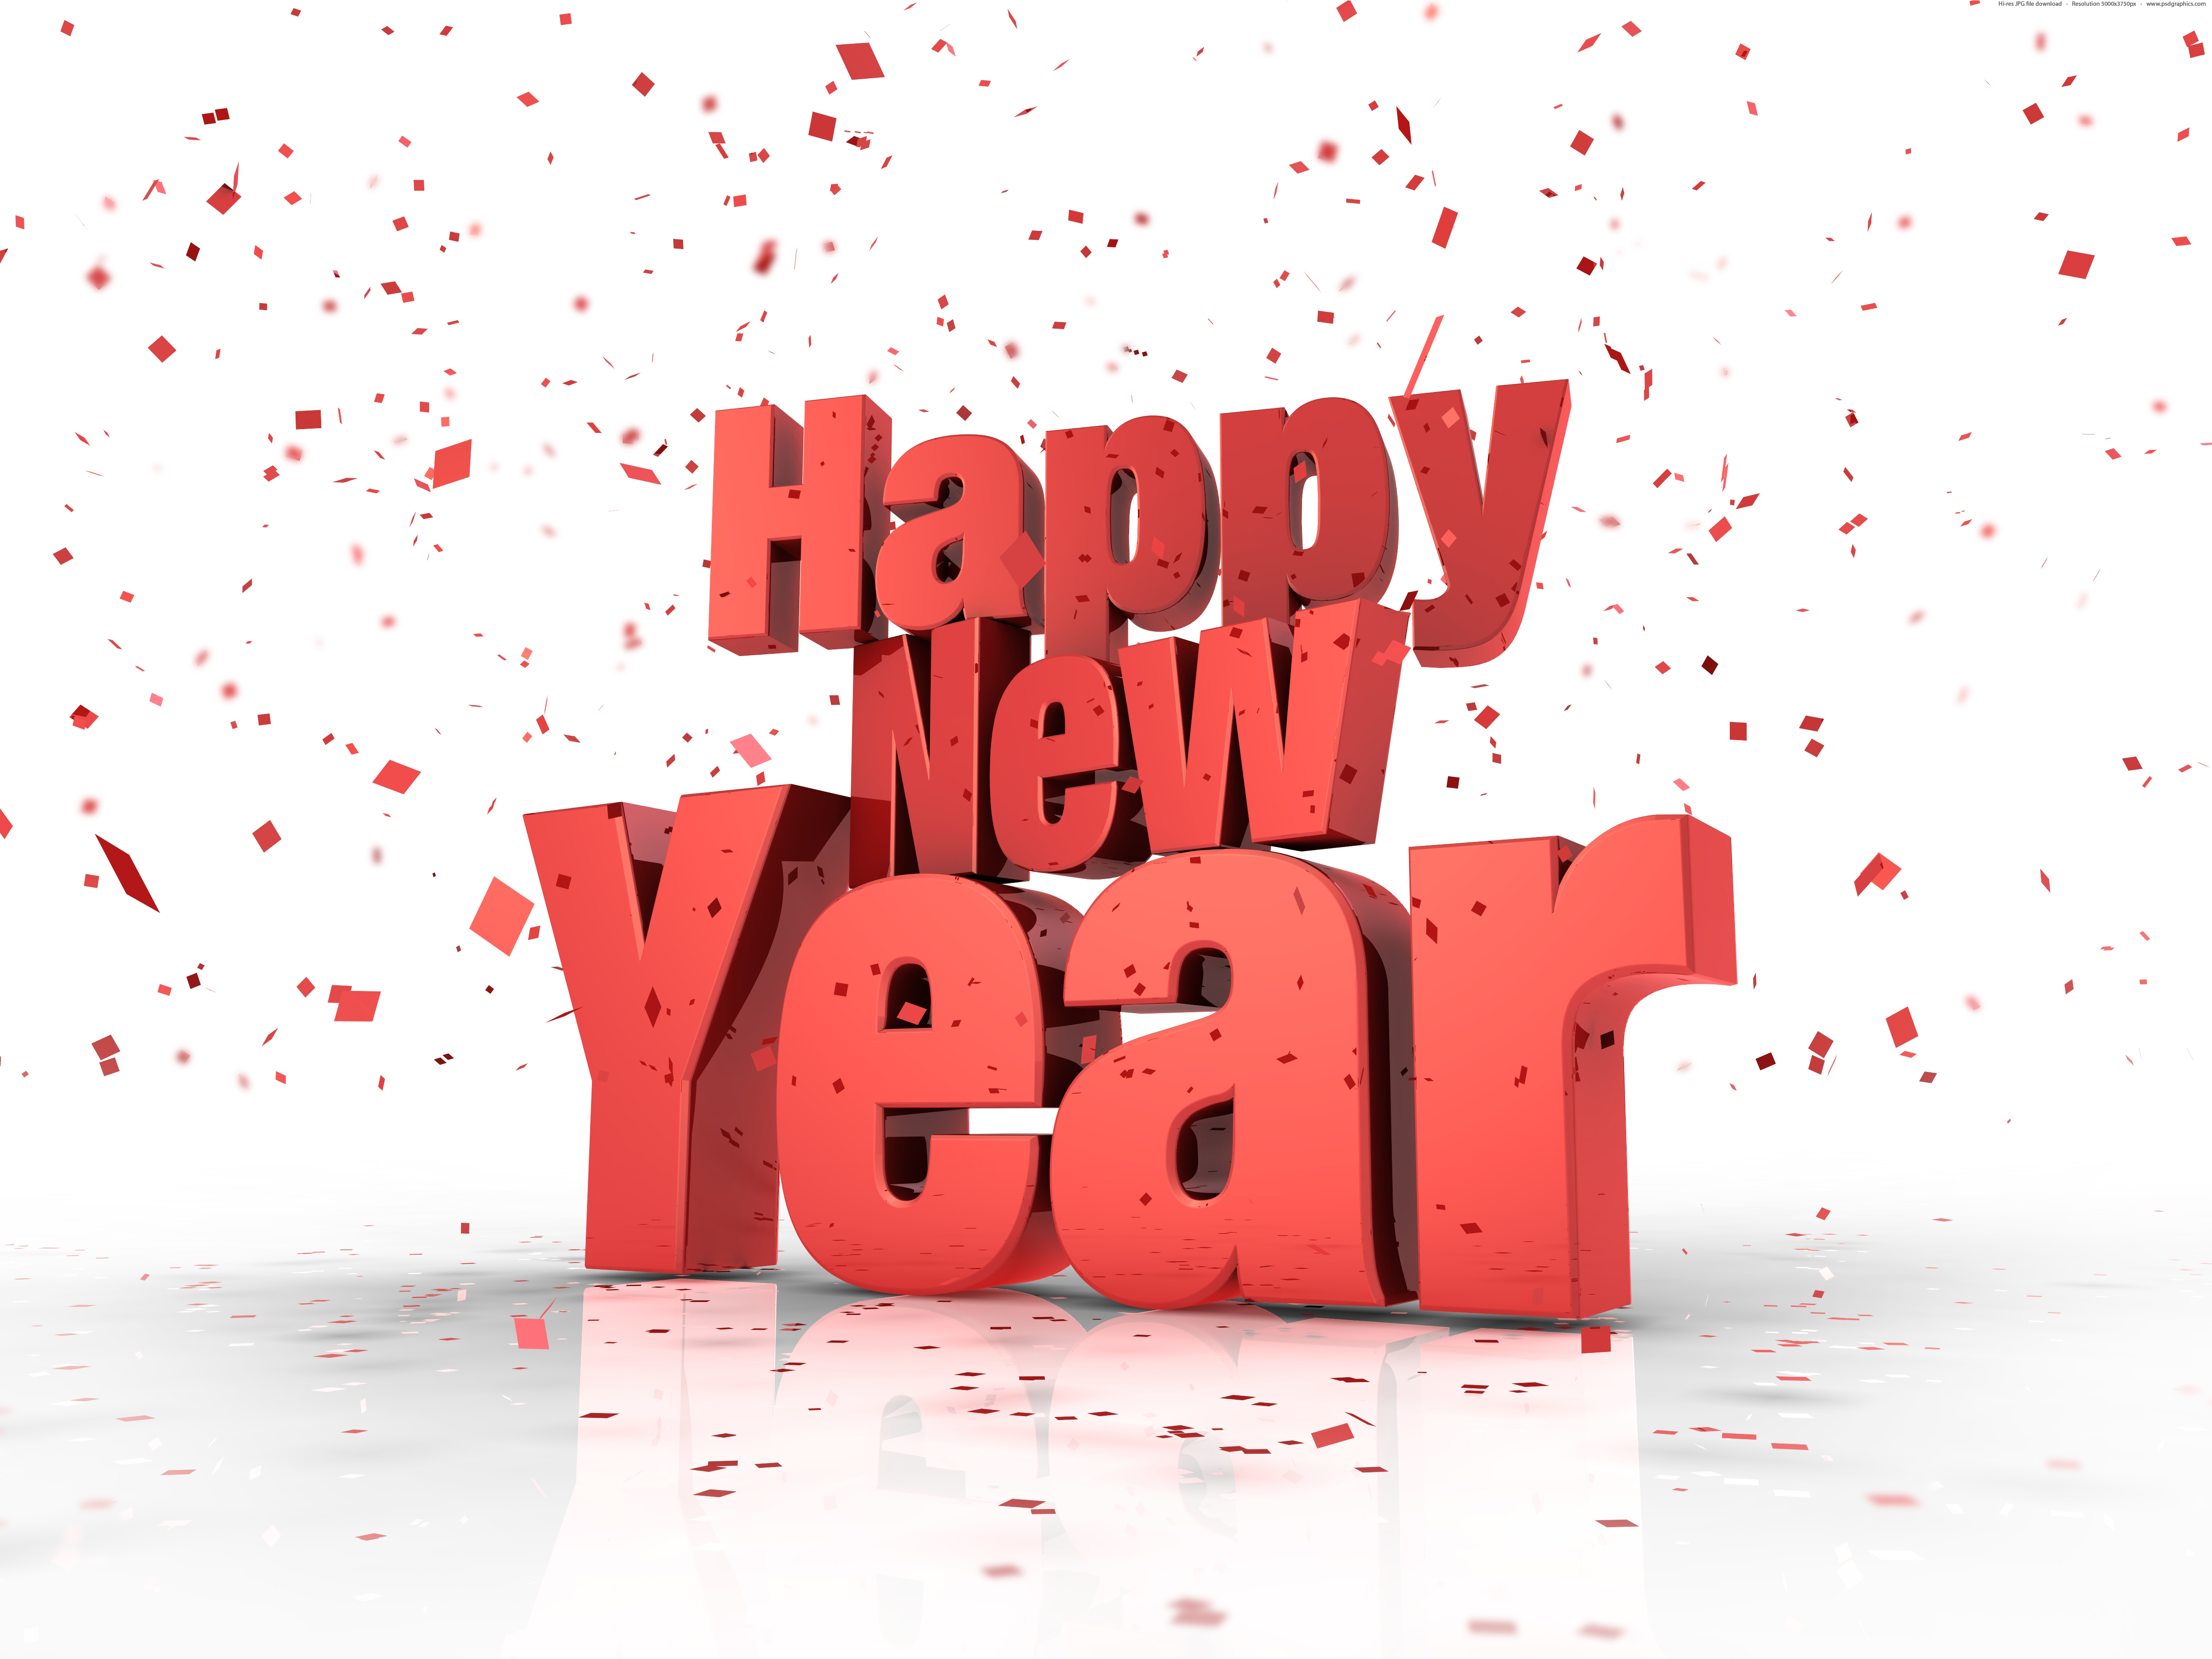 awesome hd happy new year image